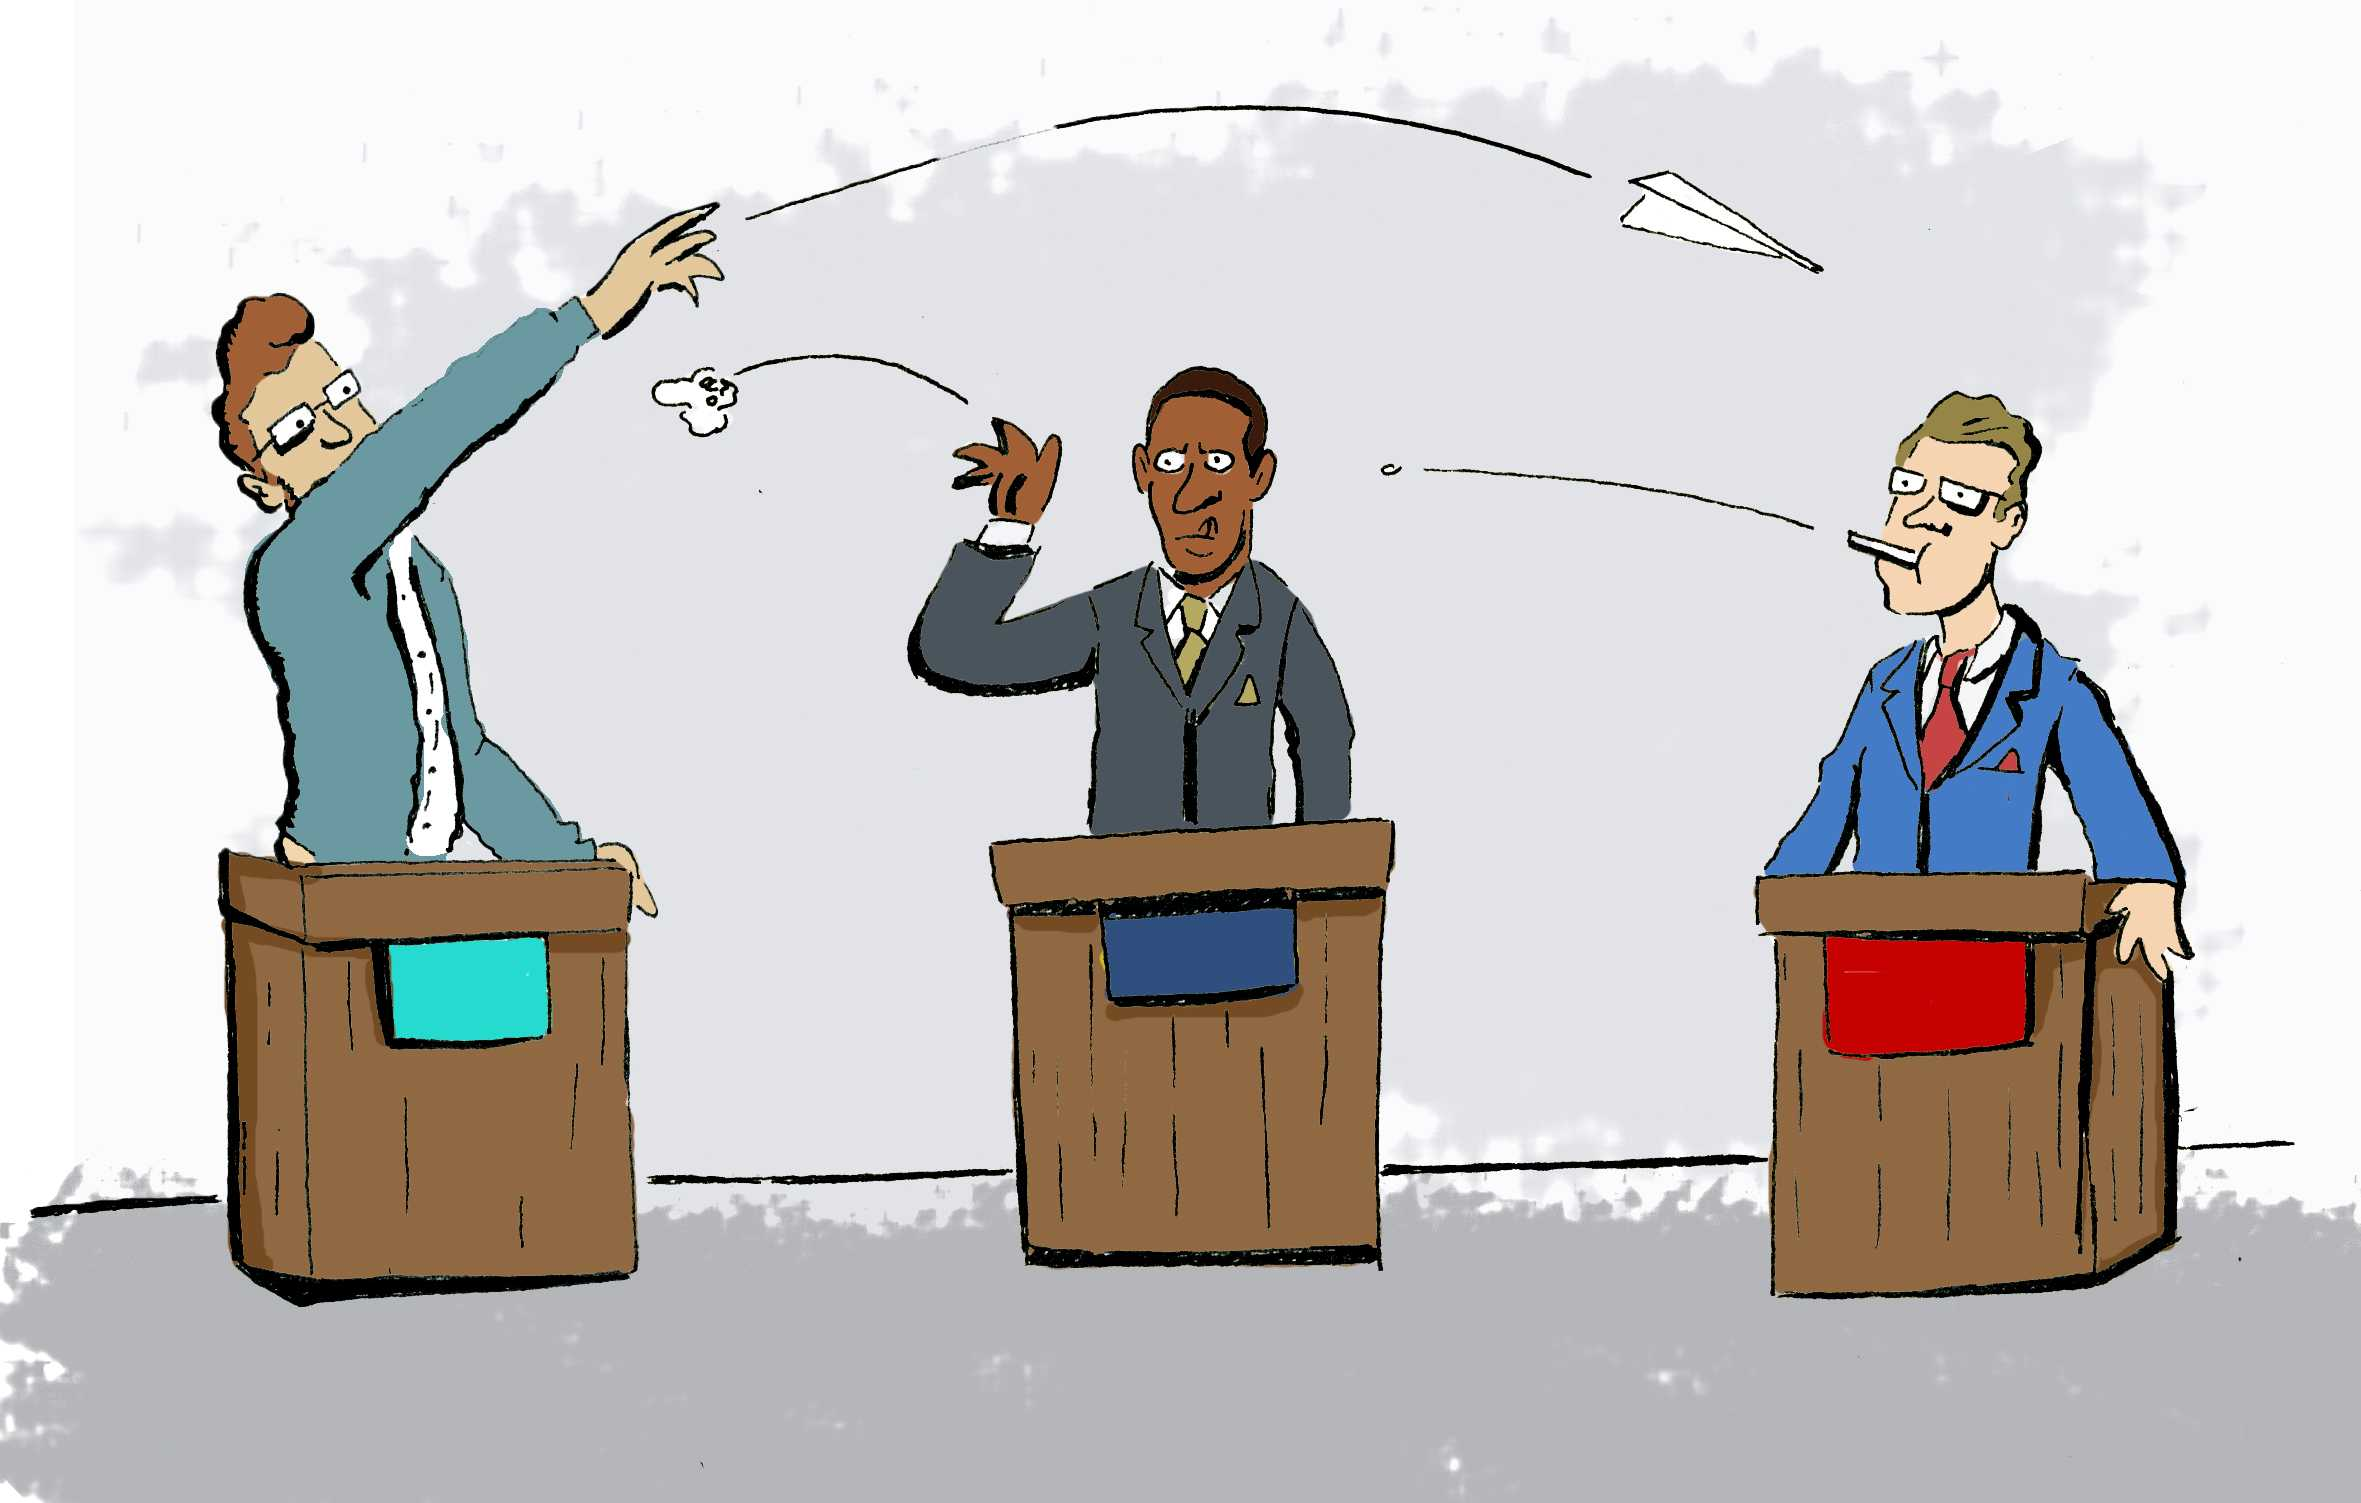 The SG political debate will be held at 6 p.m. in the Osprey Plaza on March 3. <em>Graphic by Michael Salussolia</em>